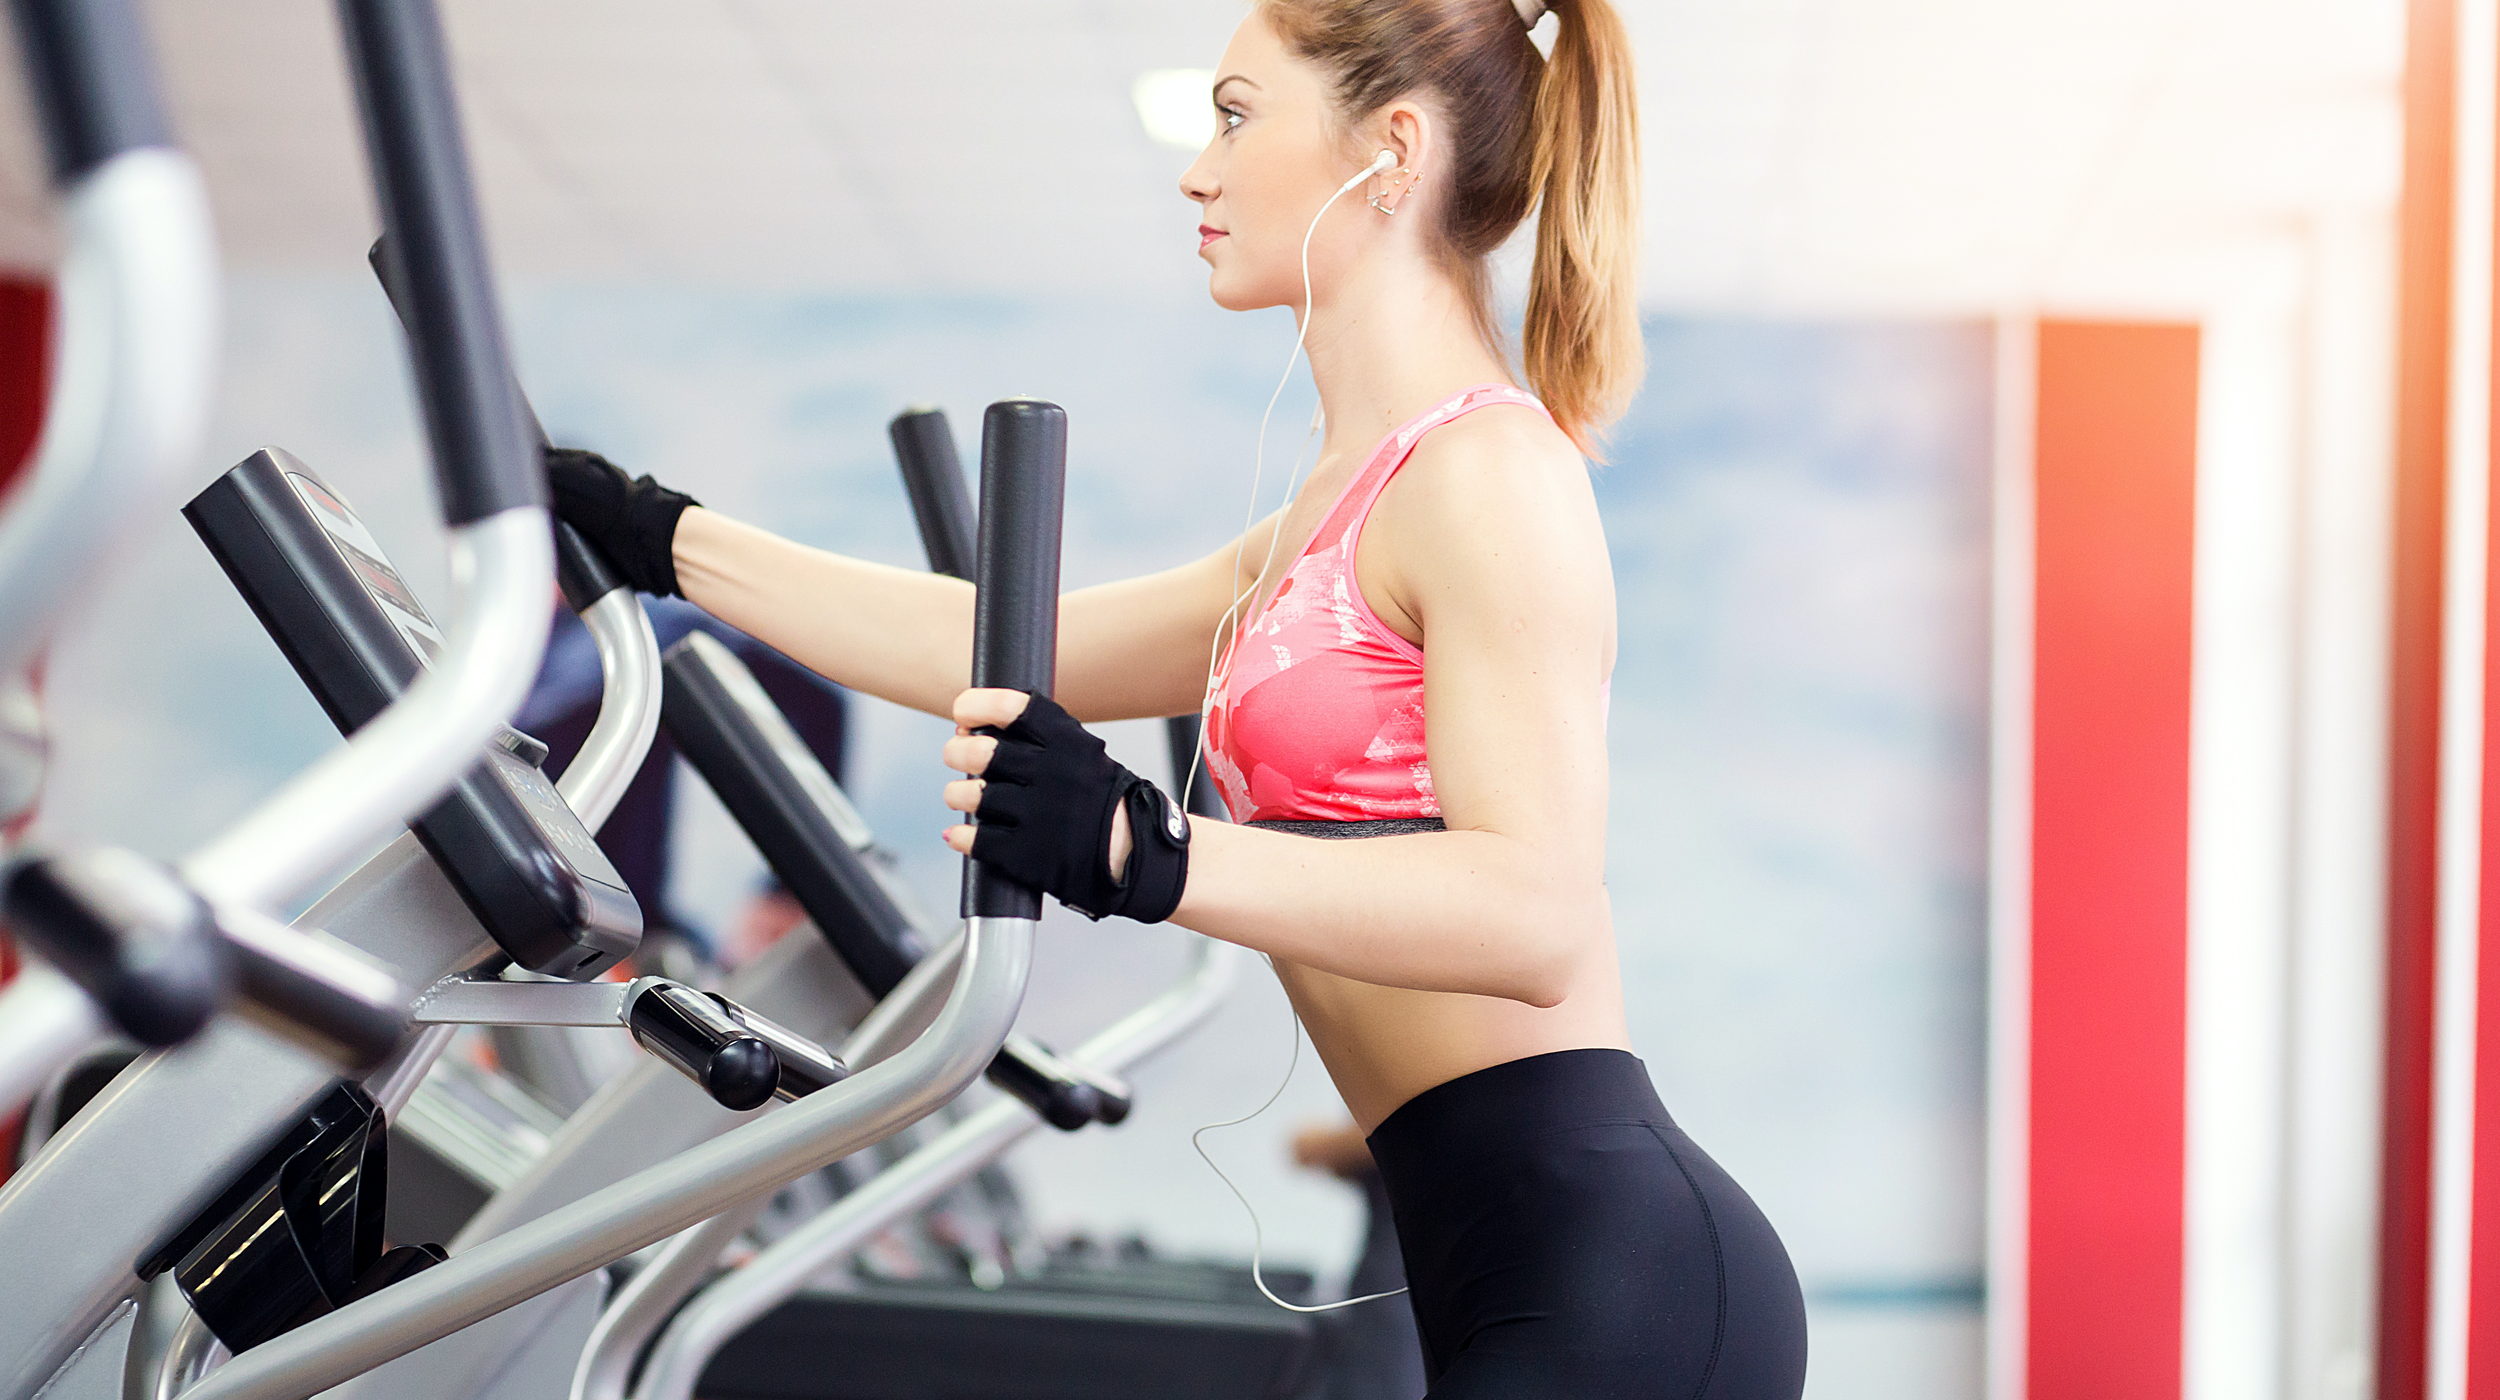 Should You do Cardio Before or After Weights?